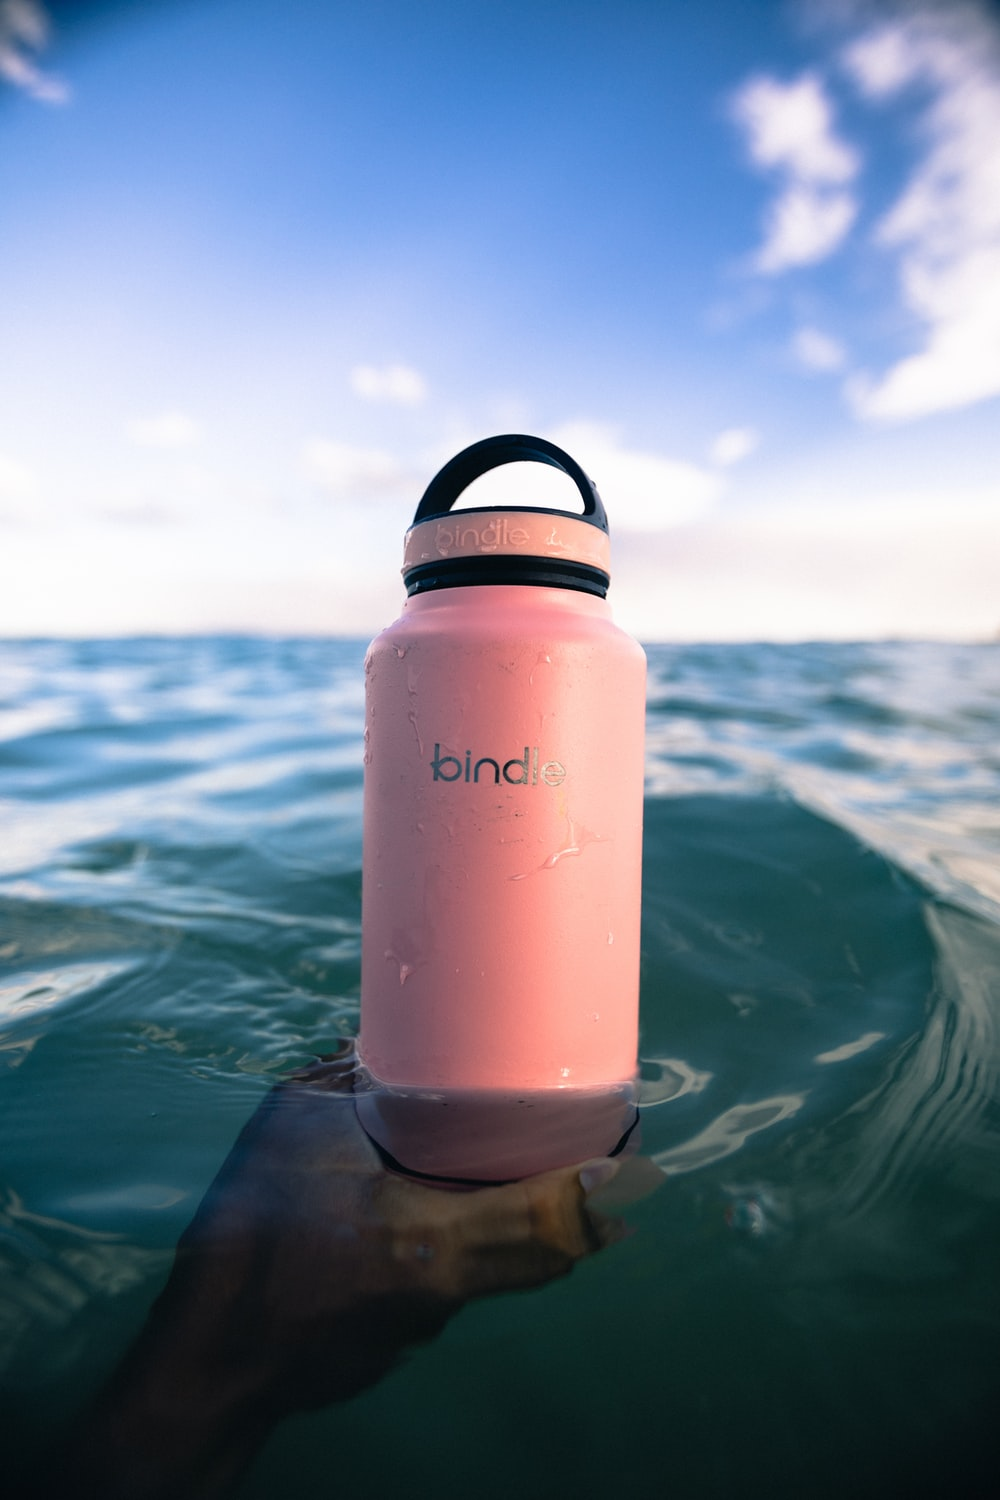 white and black plastic tumbler on water